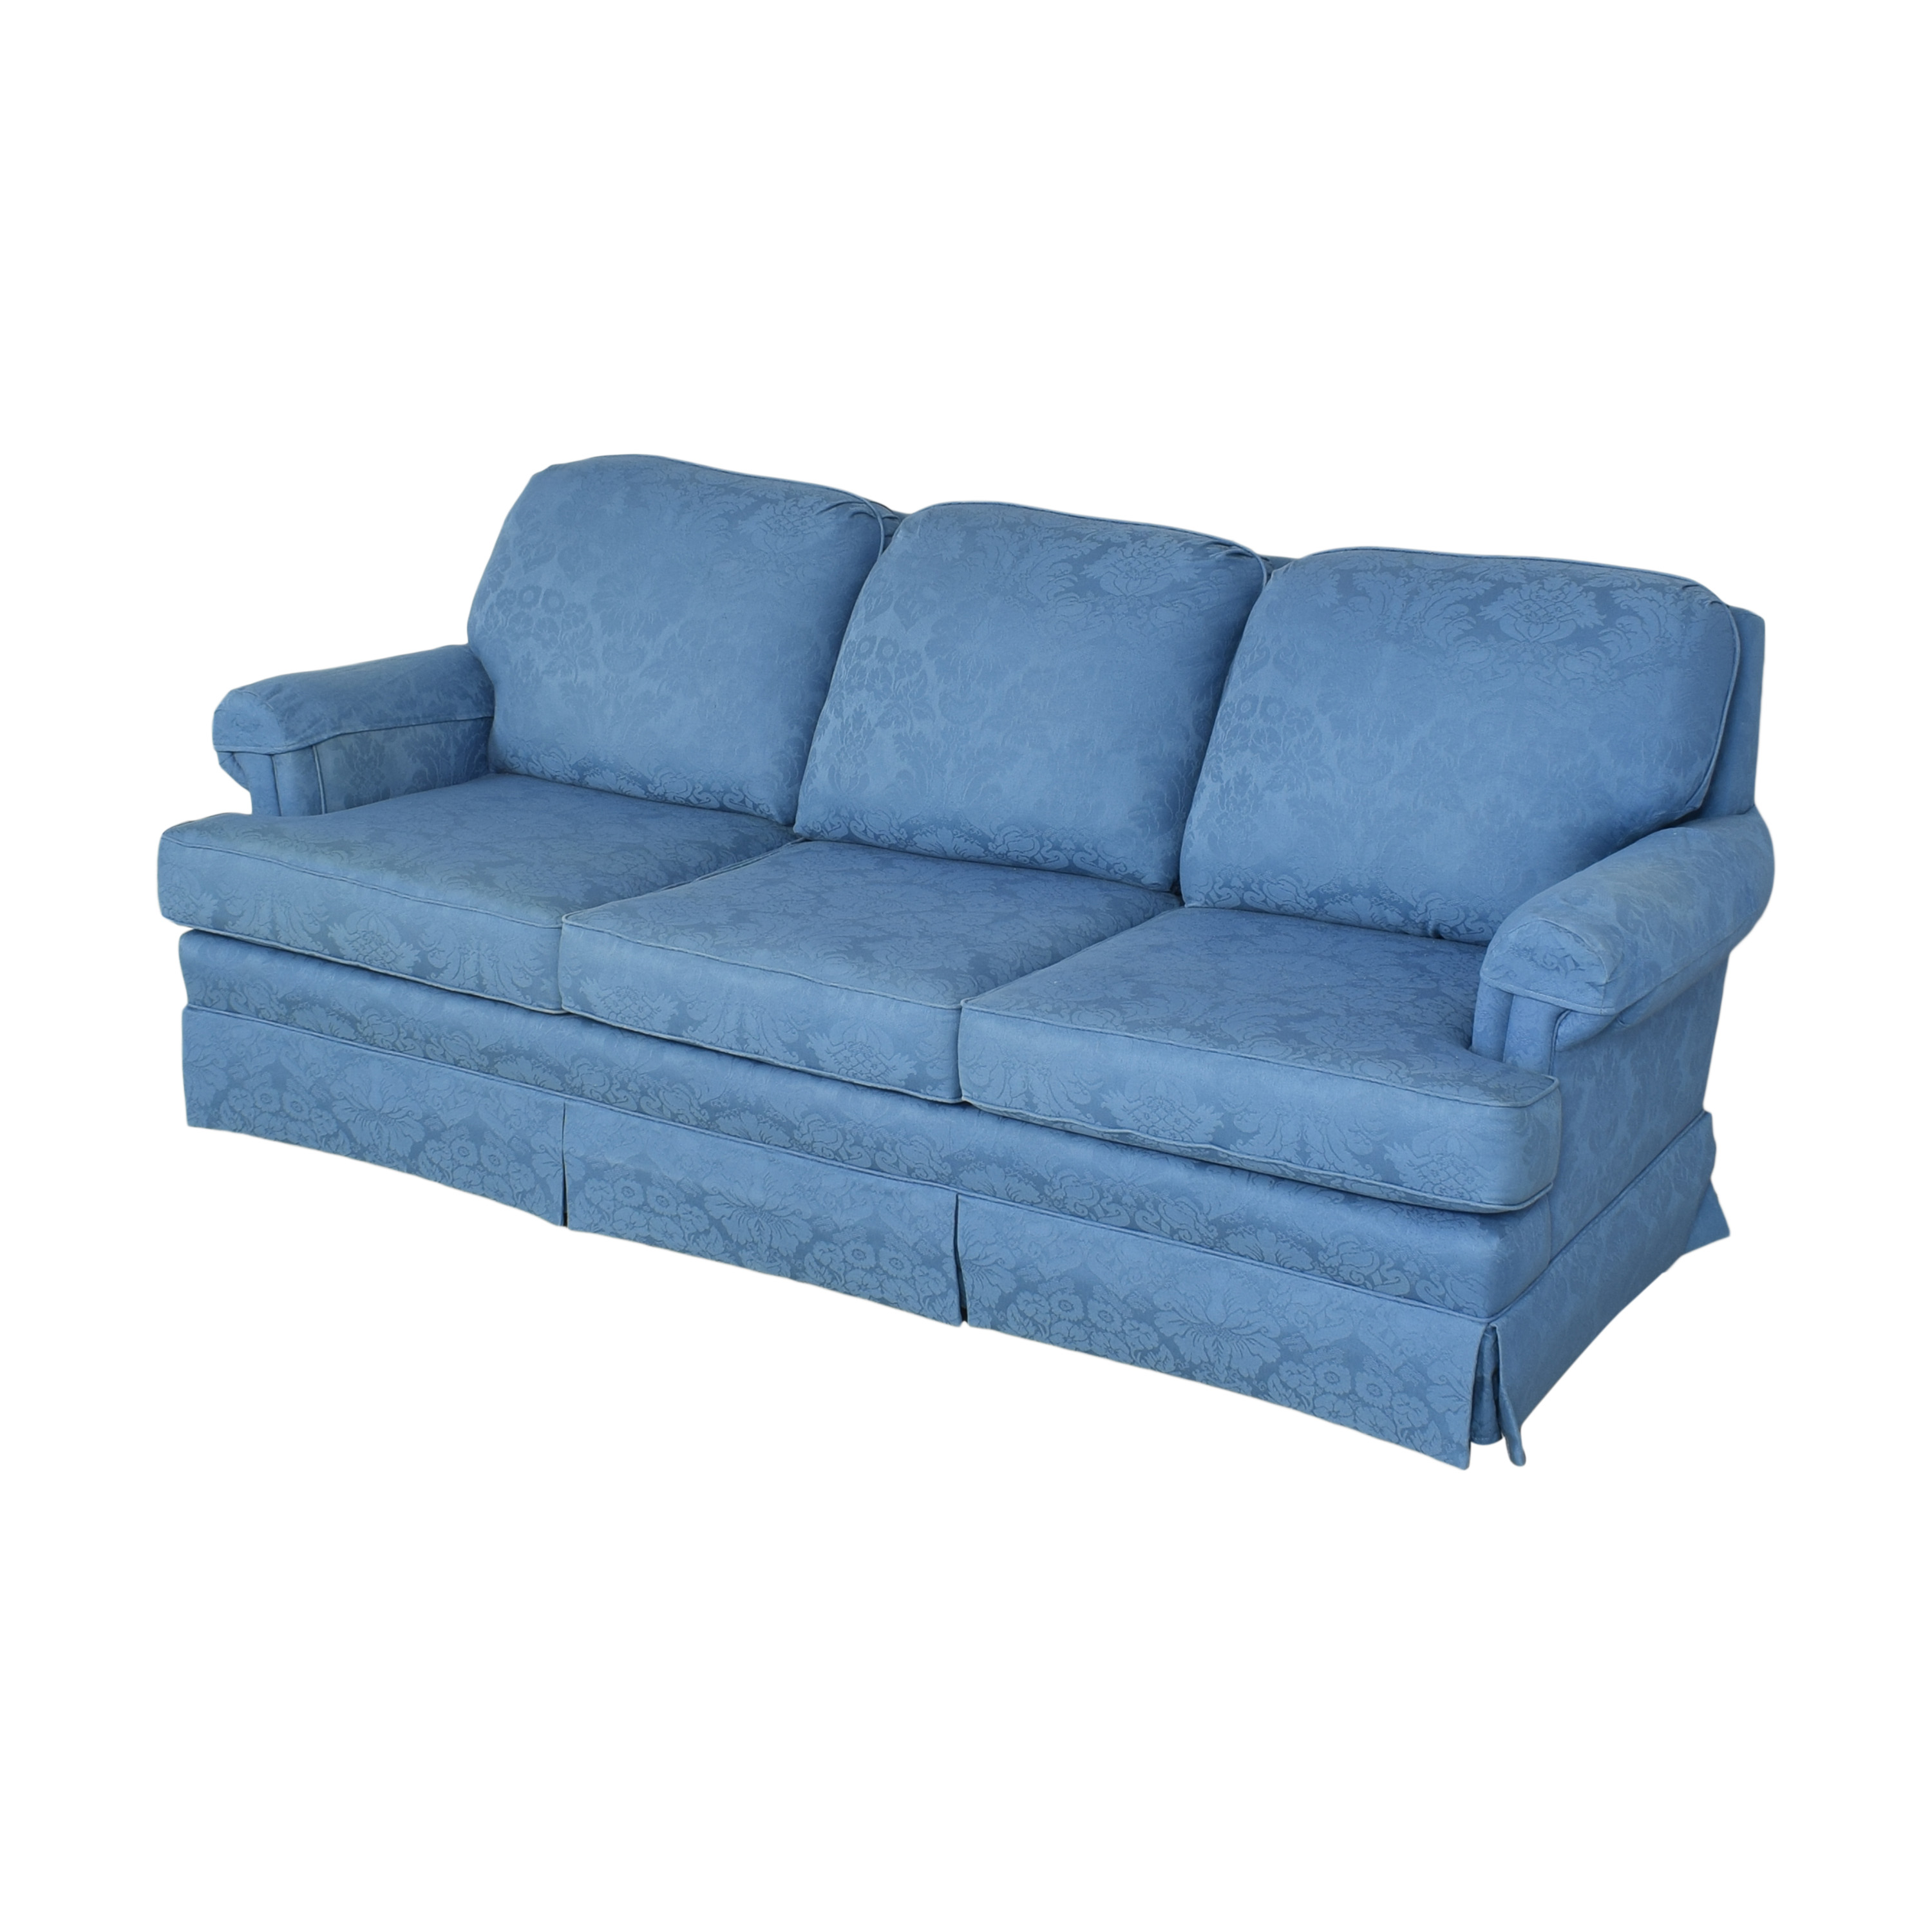 buy Norwalk Furniture Norwalk Three Cushion Sofa online